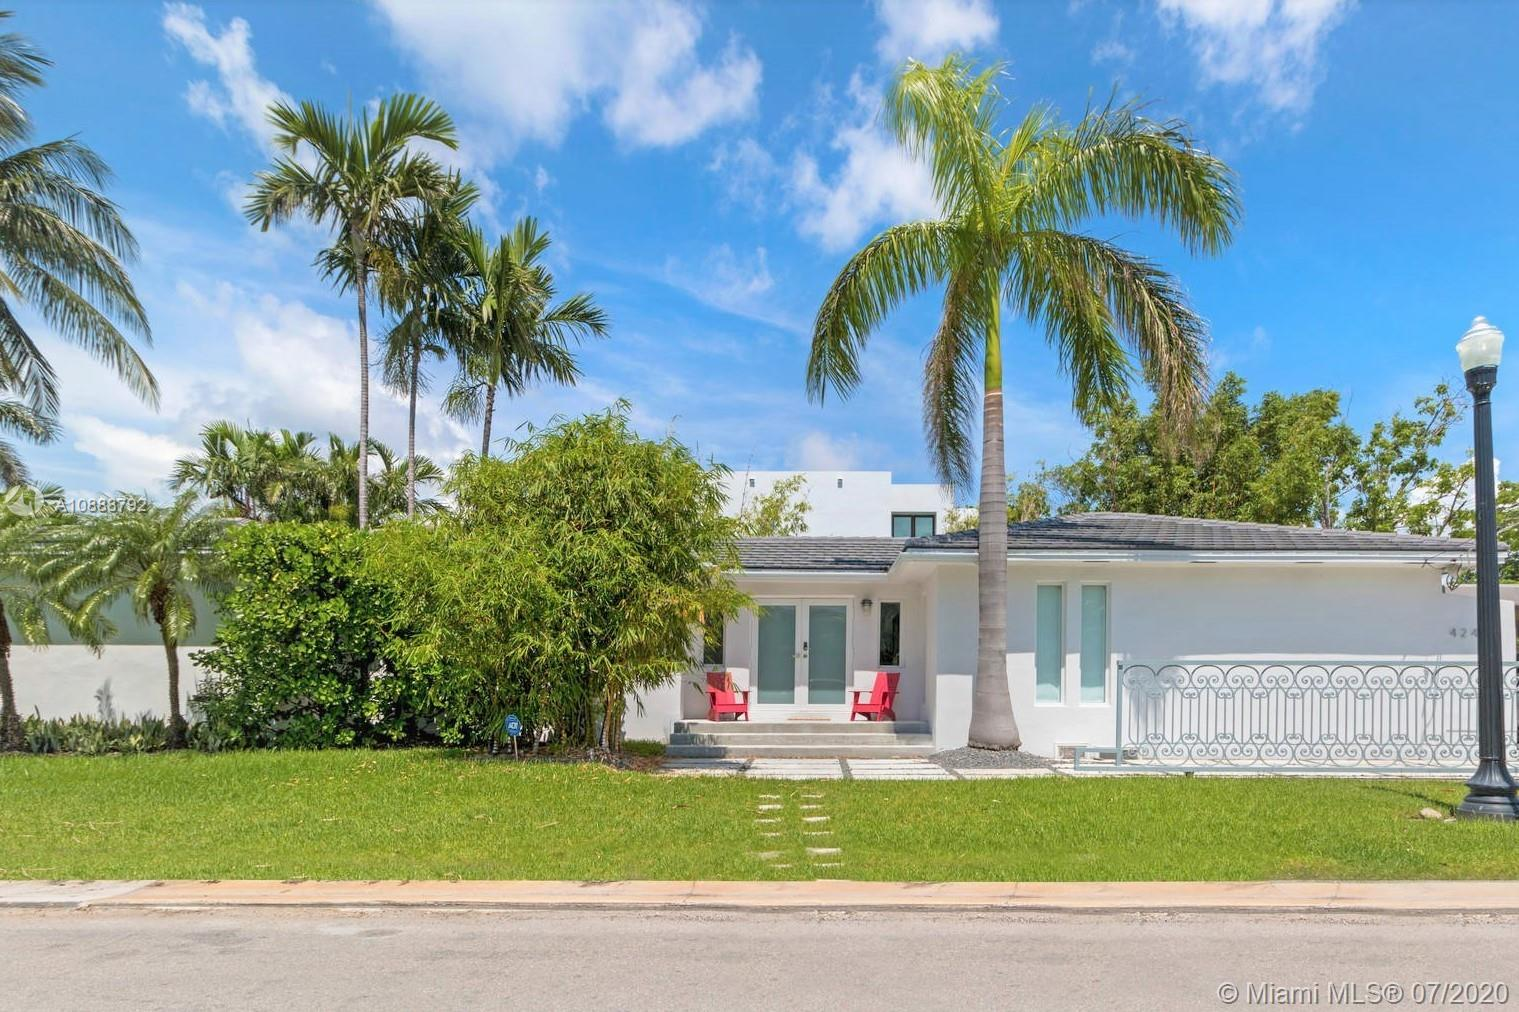 Fabulous, flawless & completely renovated home on Di Lido Island, Miami Beach. This spectacular 2,443 SF home has been remodeled with attention to every detail and features 4 BR/3.5 BA, a spacious open floor plan, impact windows and doors, updated roof, and beautiful art deco details throughout. Amazing & large master suite with walk-in closet and a bonus room/office on the side of the master bedroom. Open & light filled living areas lead out to the homes gorgeous & private backyard. Conveniently located on Venetian Islands, between Downtown Miami & South Beach & a short bike ride away from Lincoln Road & Sunset Harbour.